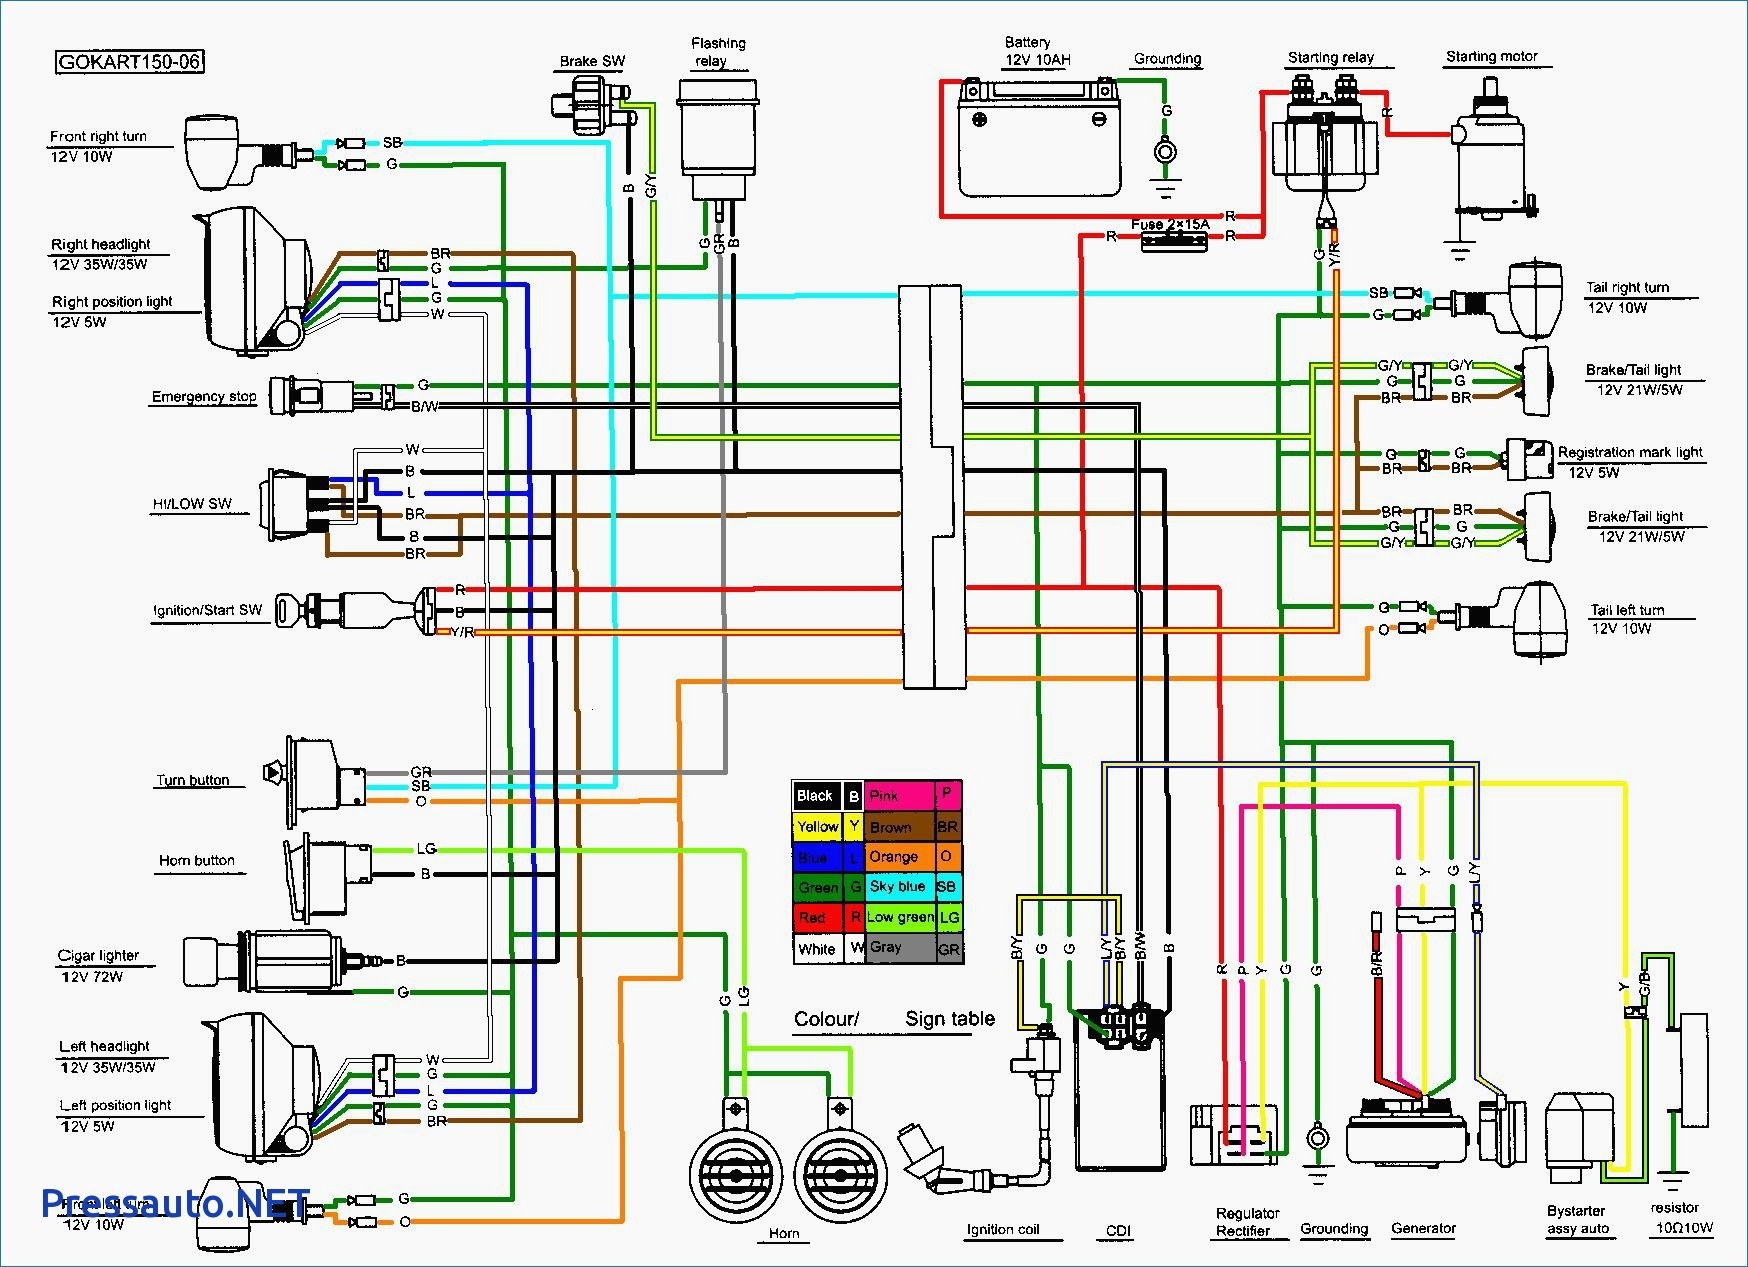 Enjoyable Atv Wiring Diagram As Well Atv Wiring Harness Diagram On 125Cc Atv Wiring Cloud Monangrecoveryedborg